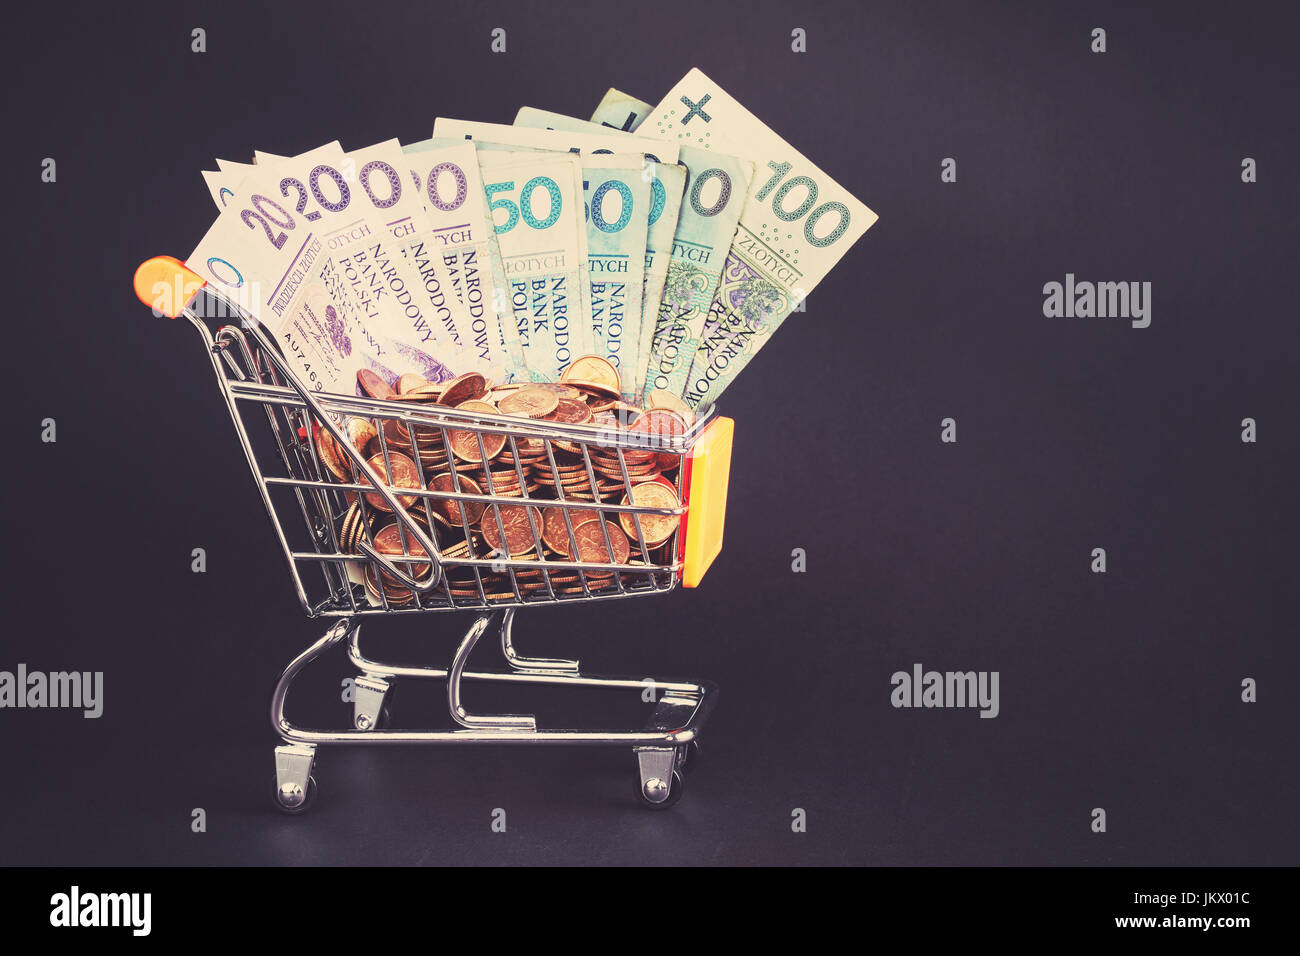 Shopping cart filled with polish zloty coins and bills, color toning applied. - Stock Image